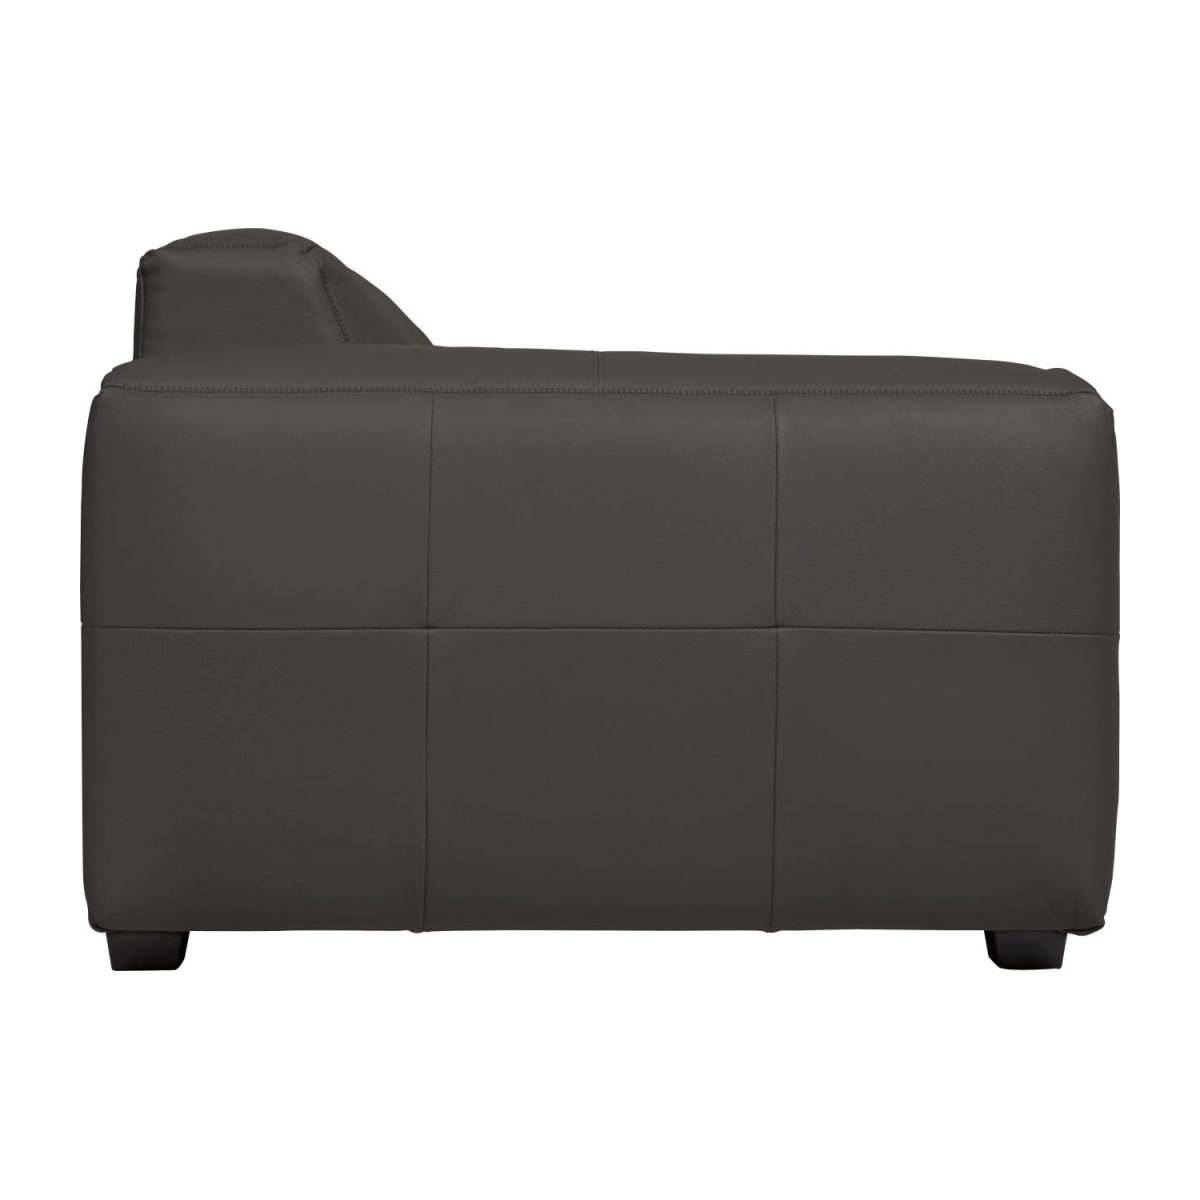 3 seater sofa in Savoy semi-aniline leather, dark brown amaretto n°6